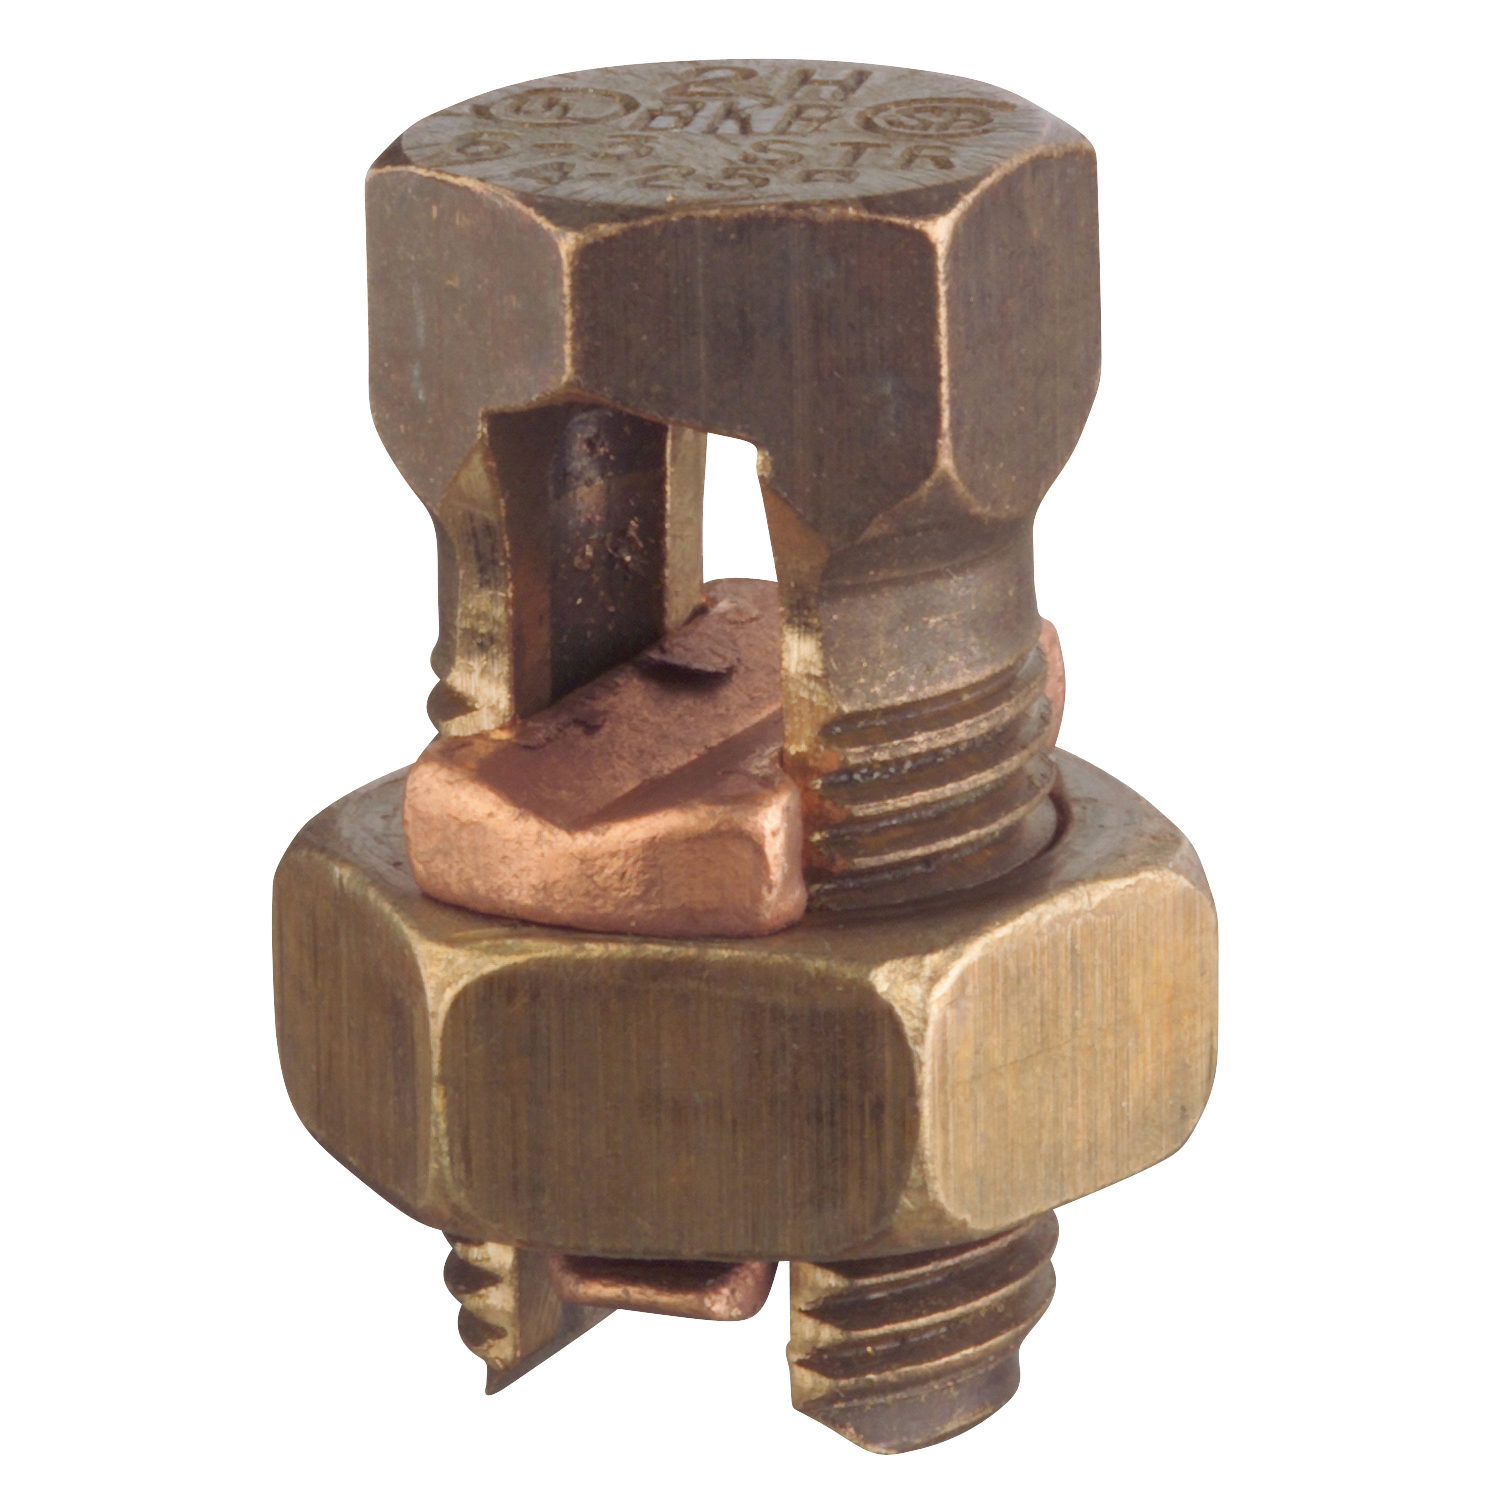 Blackburn,6H,Blackburn® H High Strength Split Bolt Connector, 8 to 6 AWG Solid Copper Conductor, 31/32 in x 15/32 in Bolt